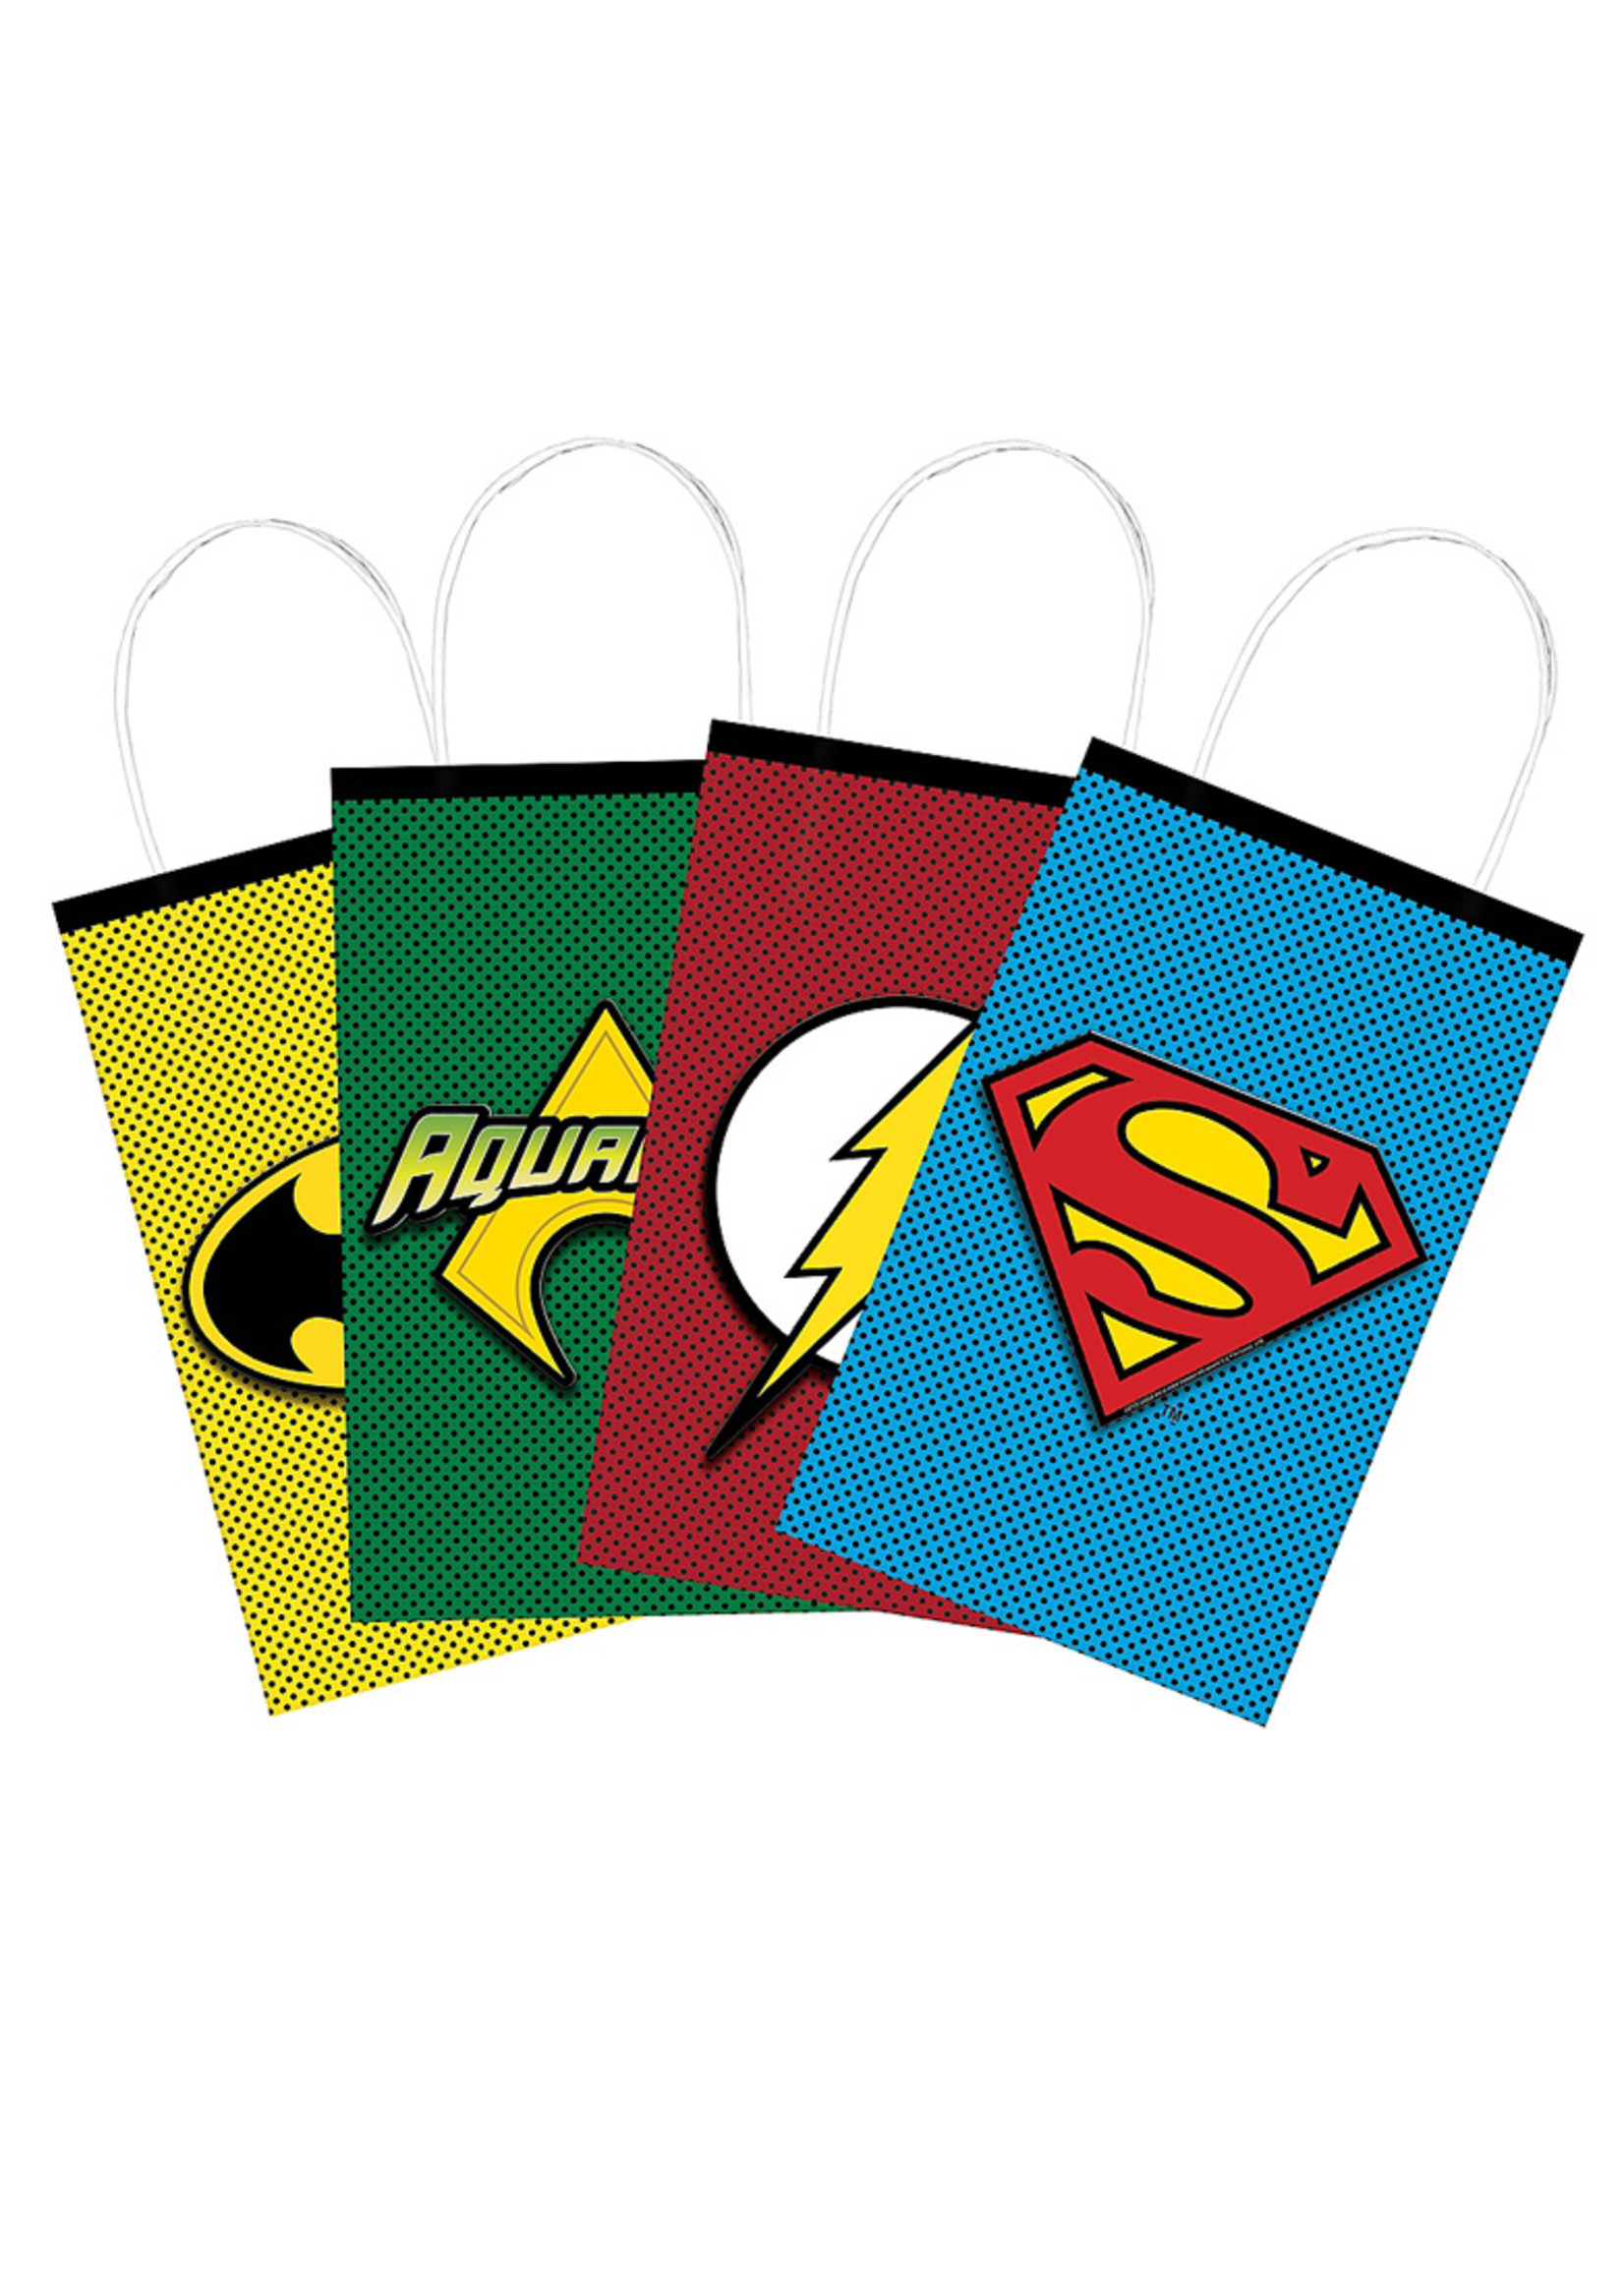 Justice League Heroes Unite Create Your Own Favor Bag Kit 8ct